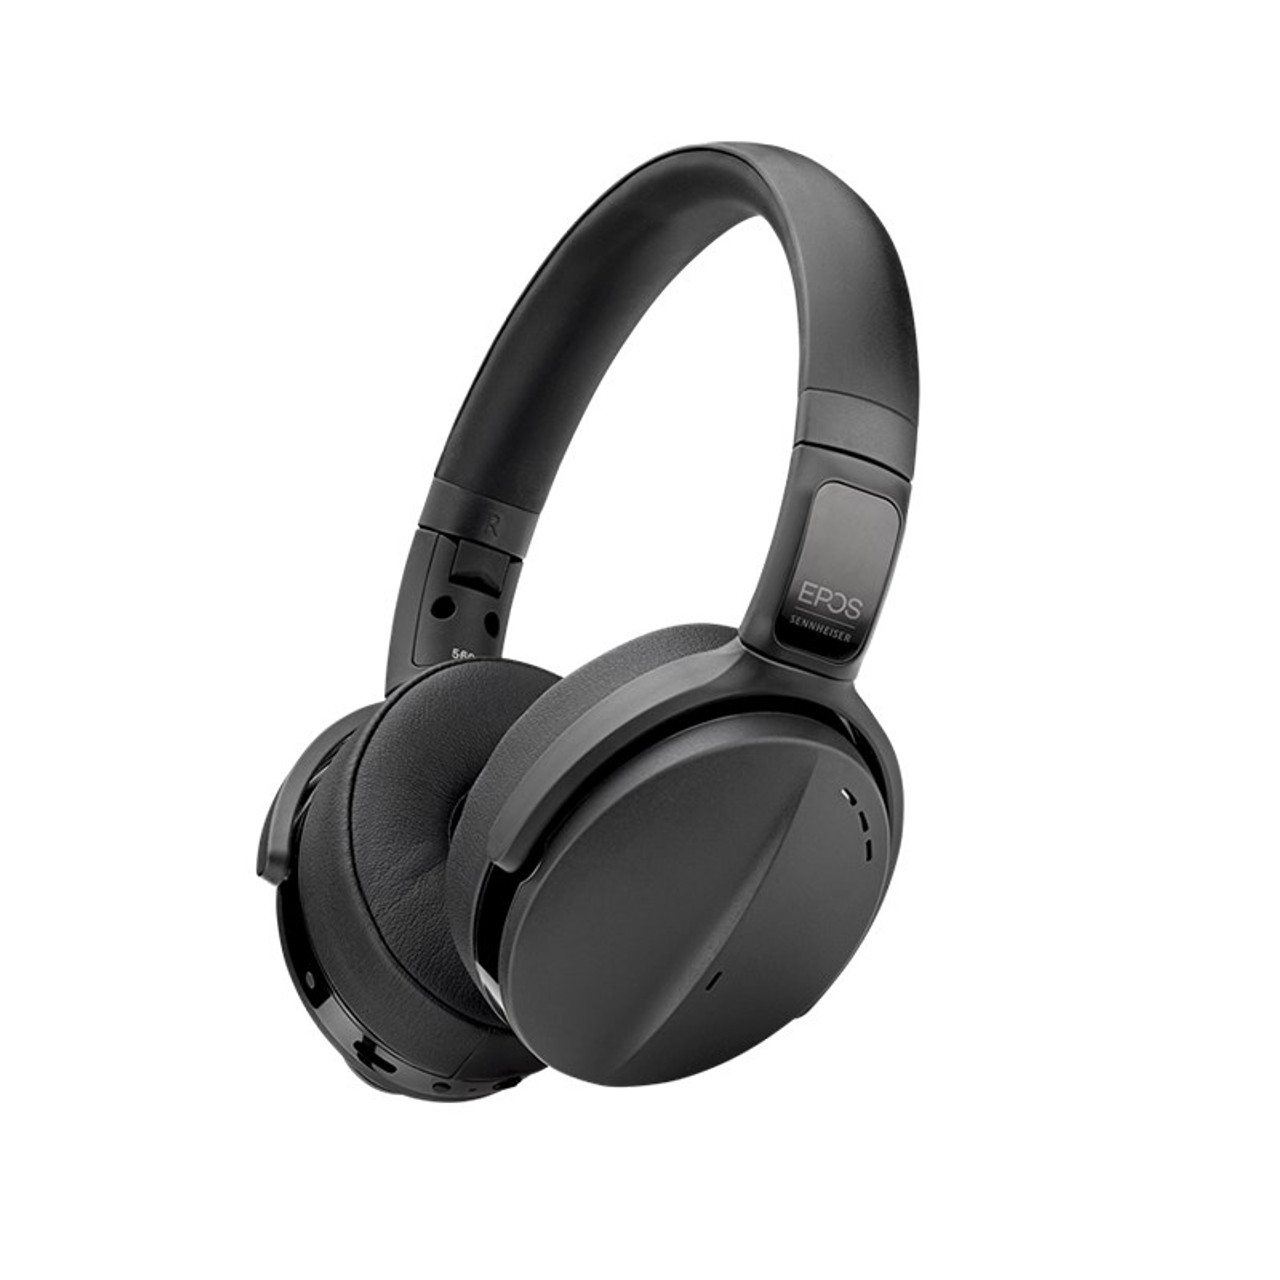 Image for EPOS Sennheiser ADAPT 563 ANC Bluetooth Headset With Mic CX Computer Superstore